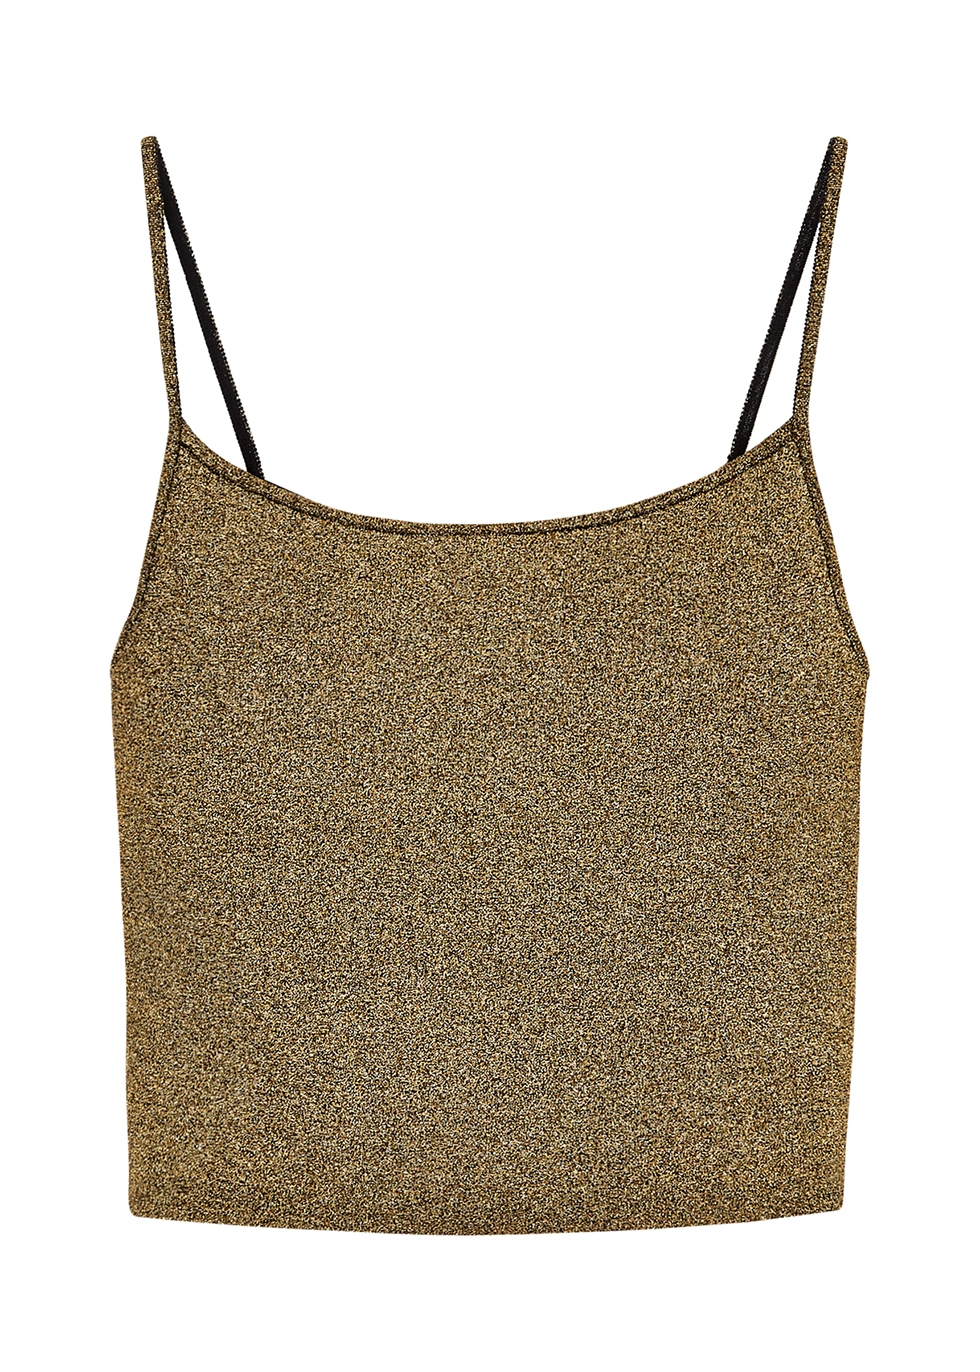 Rosie gold metallic-knit top